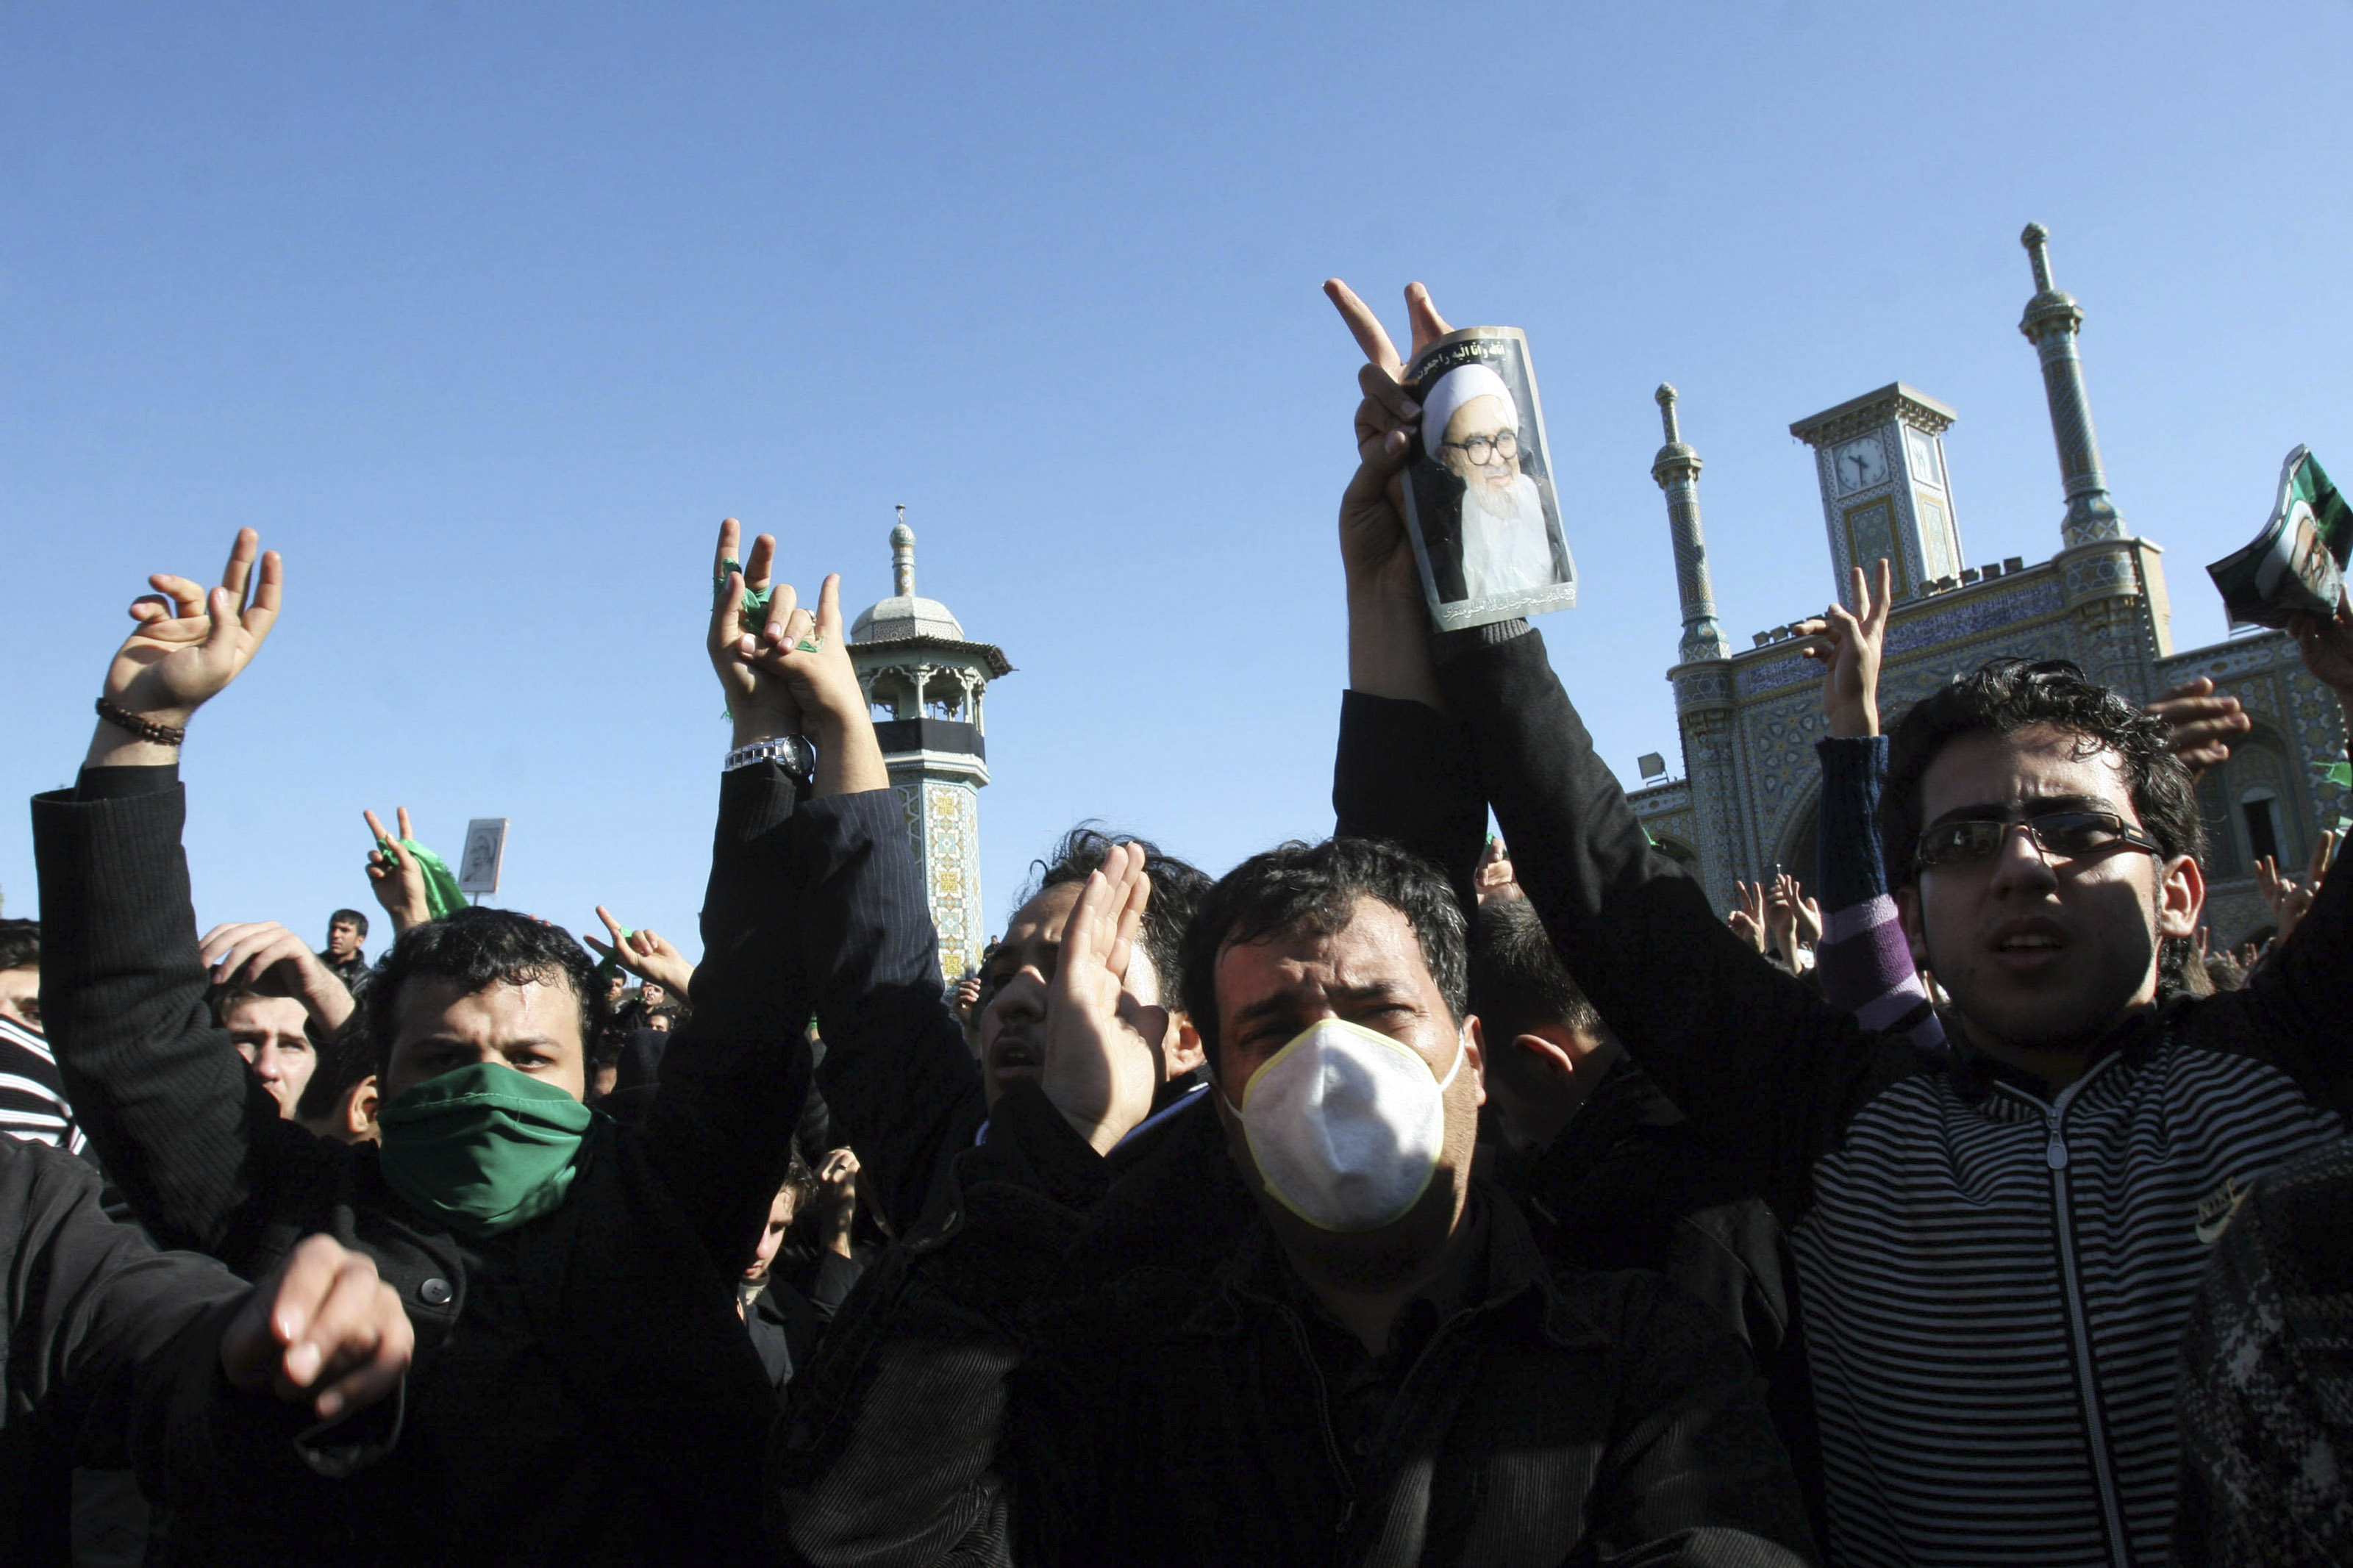 People wear green bands in support of the Iranian opposition movement during the funeral of dissident Iranian cleric Grand Ayatollah Hossein Ali Montazeri in the holy city of Qom on December 21, 2009.